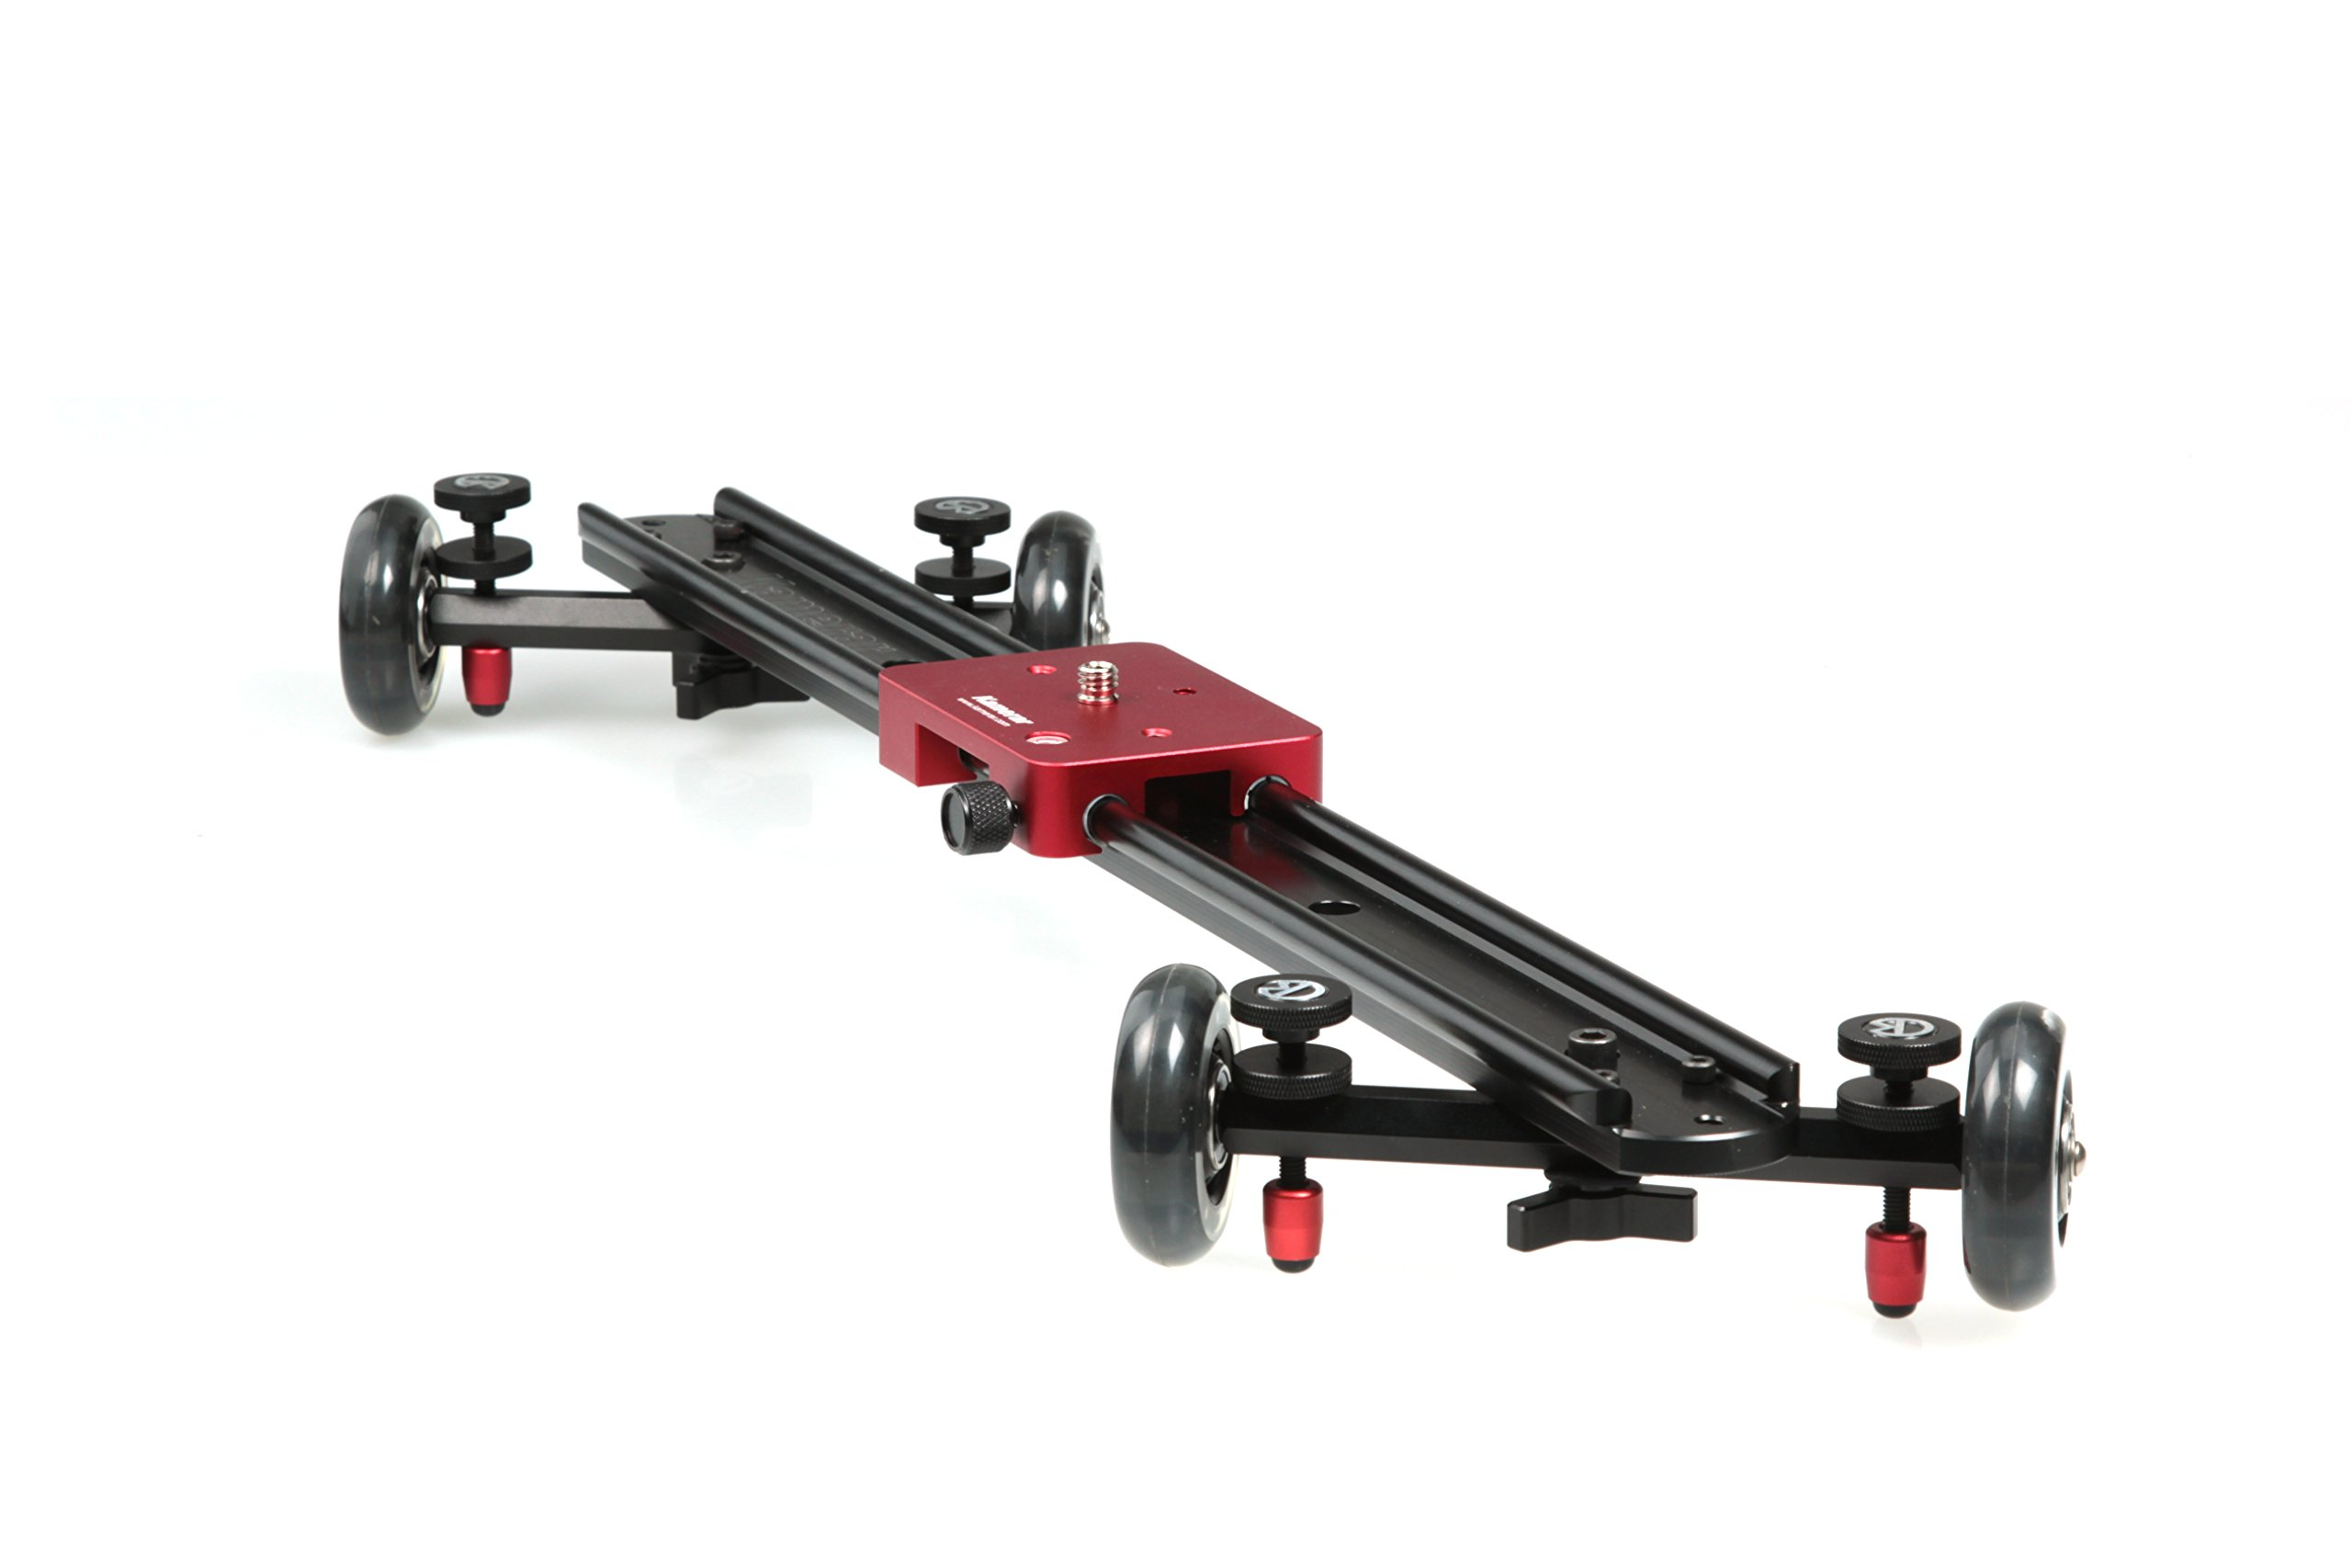 KAMERAR SD-1 23'' DSLR Camera Slider Dolly Track Video STABILIZER System W/Wheel by Kamerar